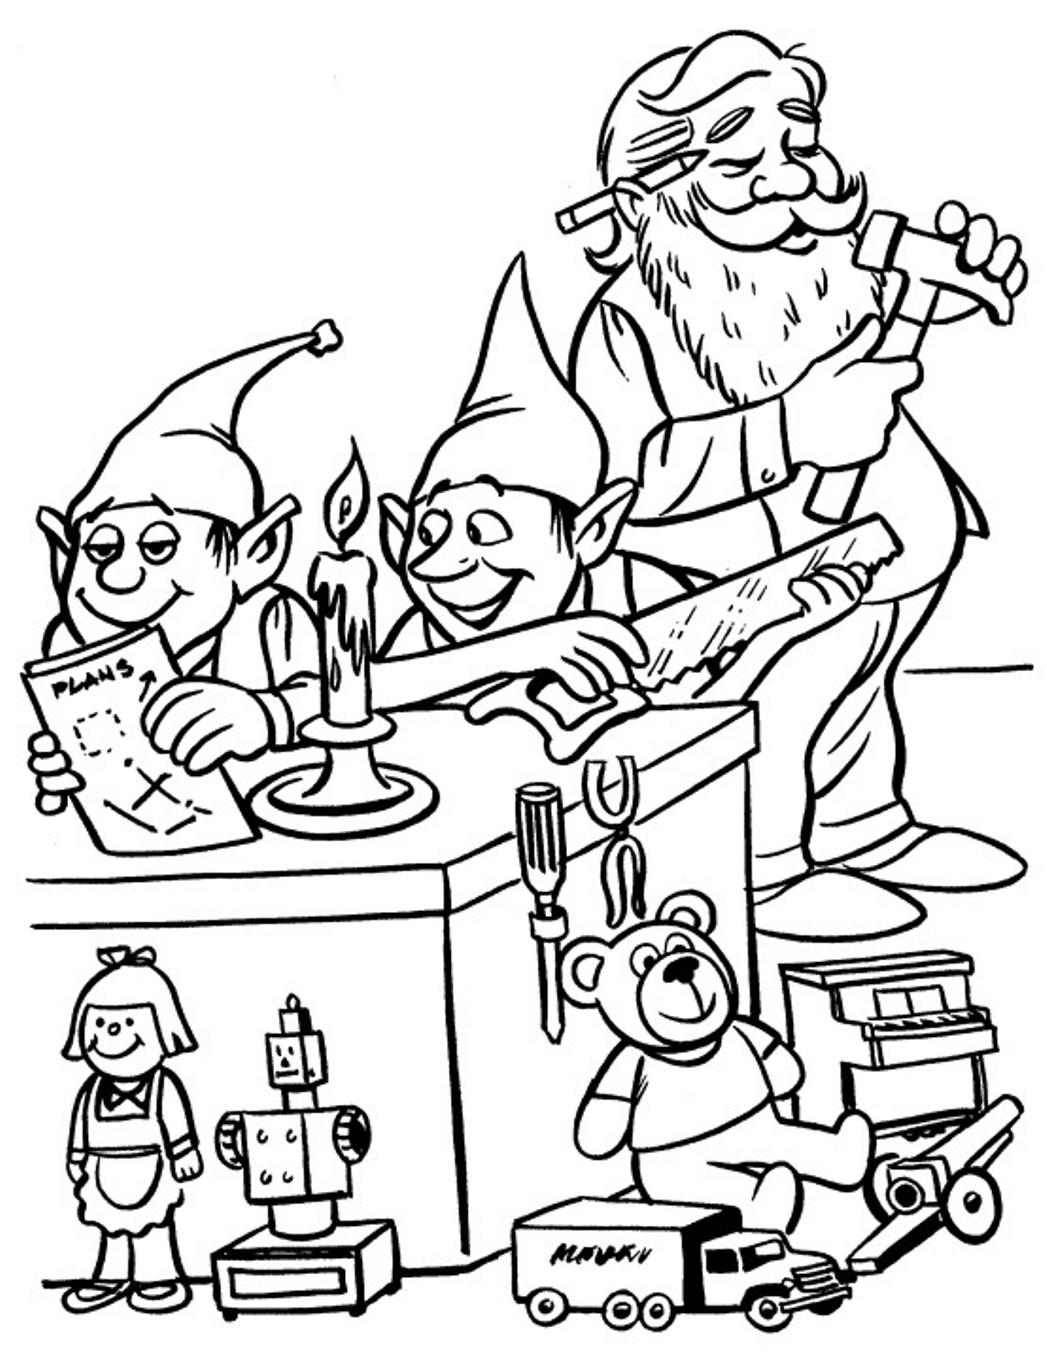 Kids Christmas Santa Claus Coloring Page With Free Father Pictures To Colour Download Clip Art